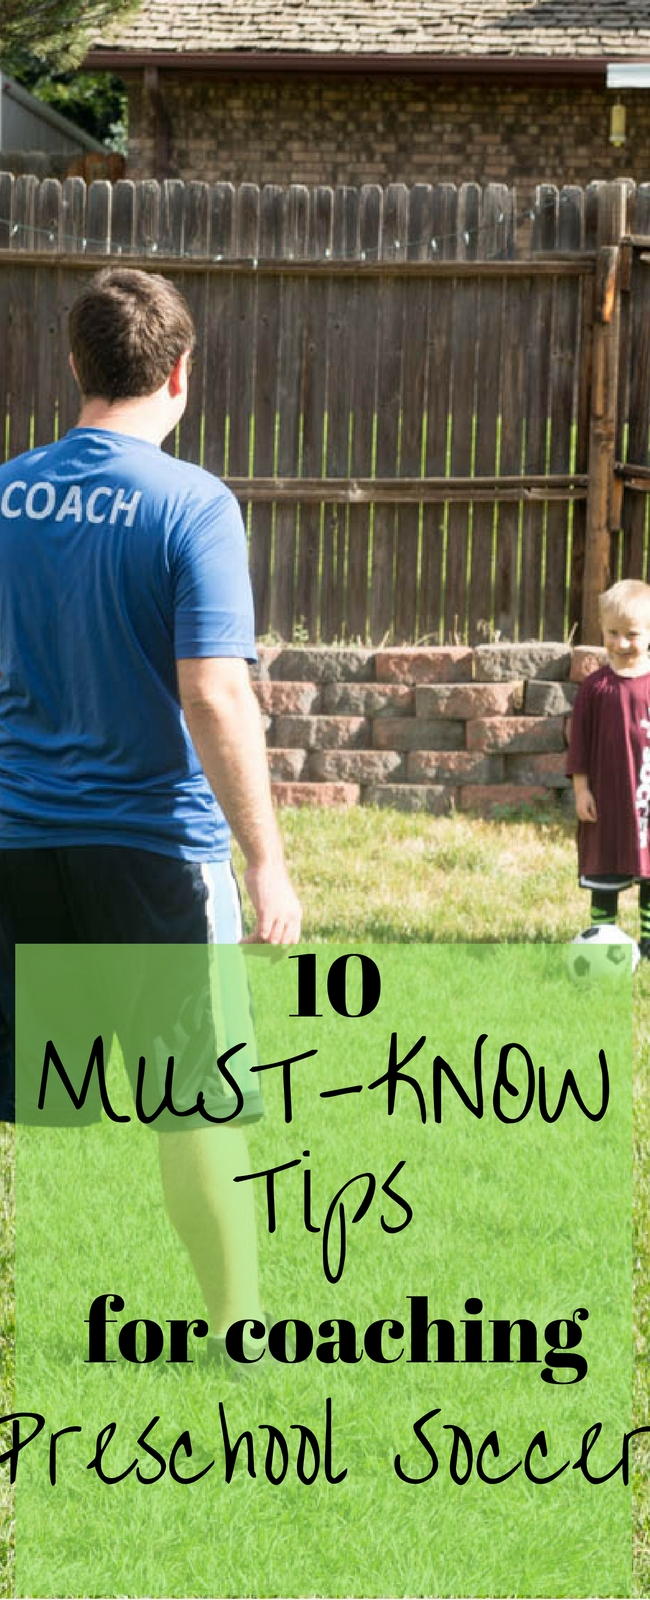 Are you coaching preschool soccer for the the first time? Here are some MUST-KNOW preschool soccer coaching tips, from an experienced preschool soccer coach. via @clarkscondensed